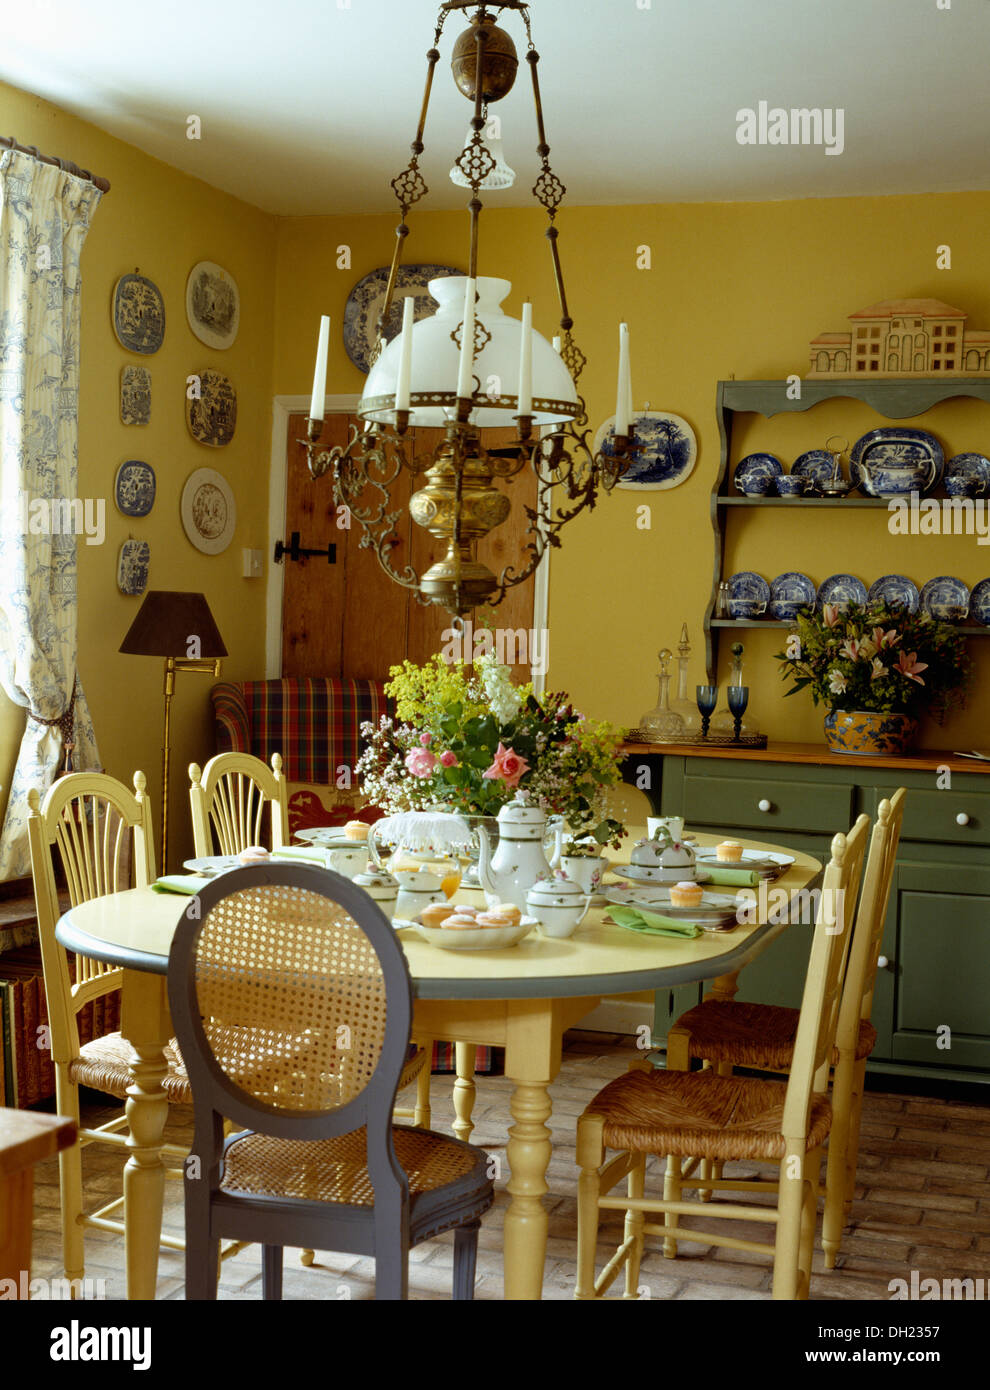 Glass Brass Victorian Lamp Above Cream Chairs And Table Set For Lunch In Pale Yellow Cottage Dining Room With Green Dresser